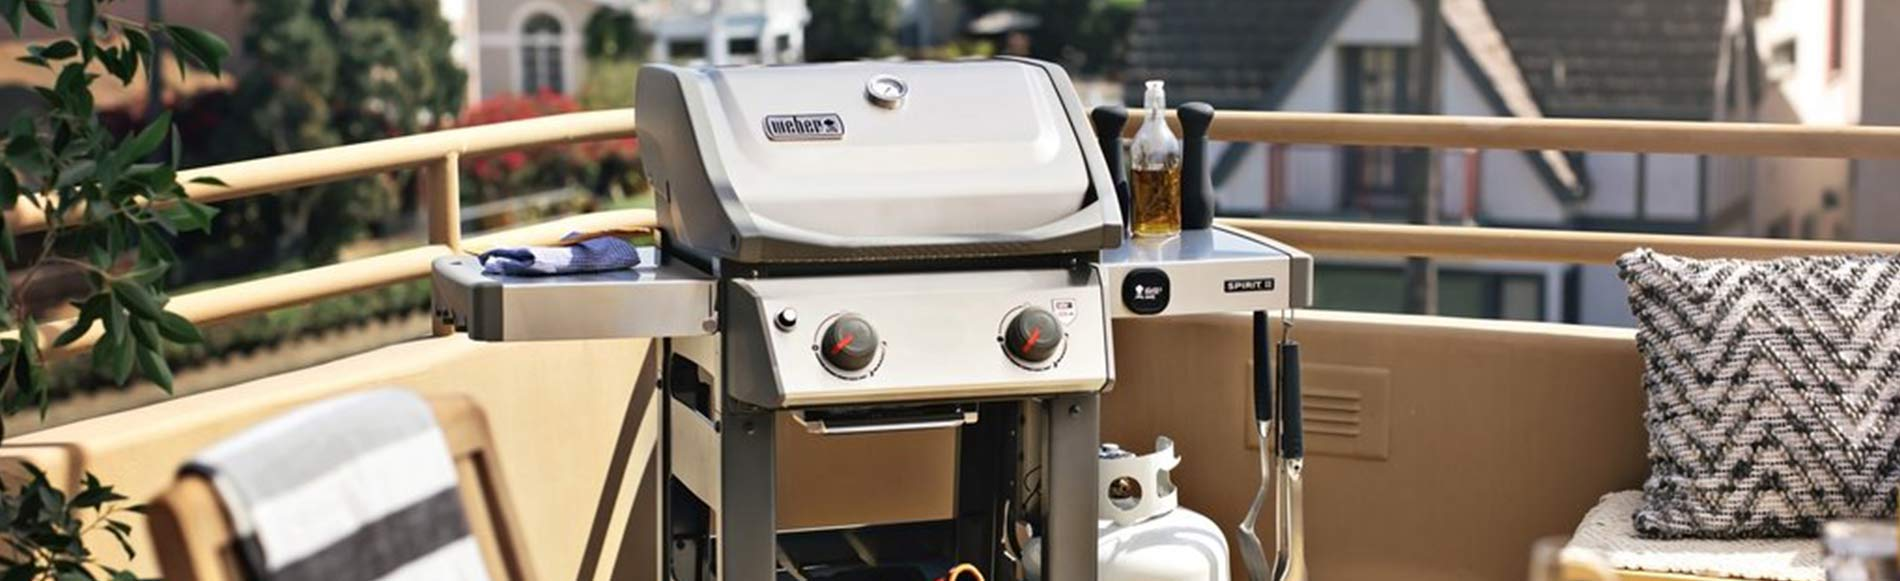 Weber Products Online